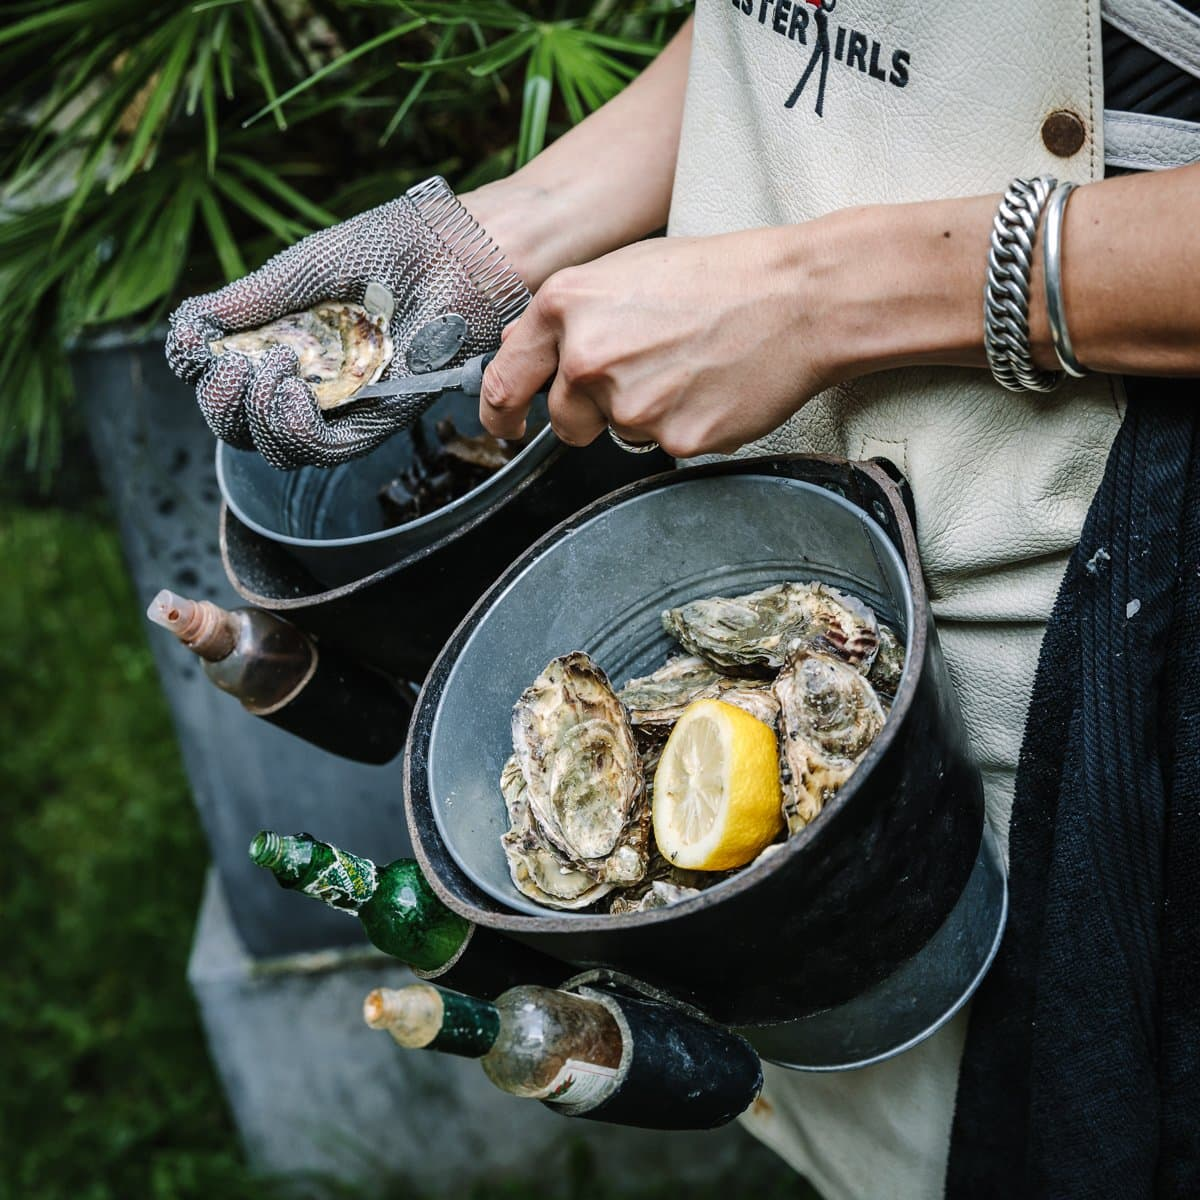 outdoor corporate event photography surrey detail shot oyster bar lady preparing